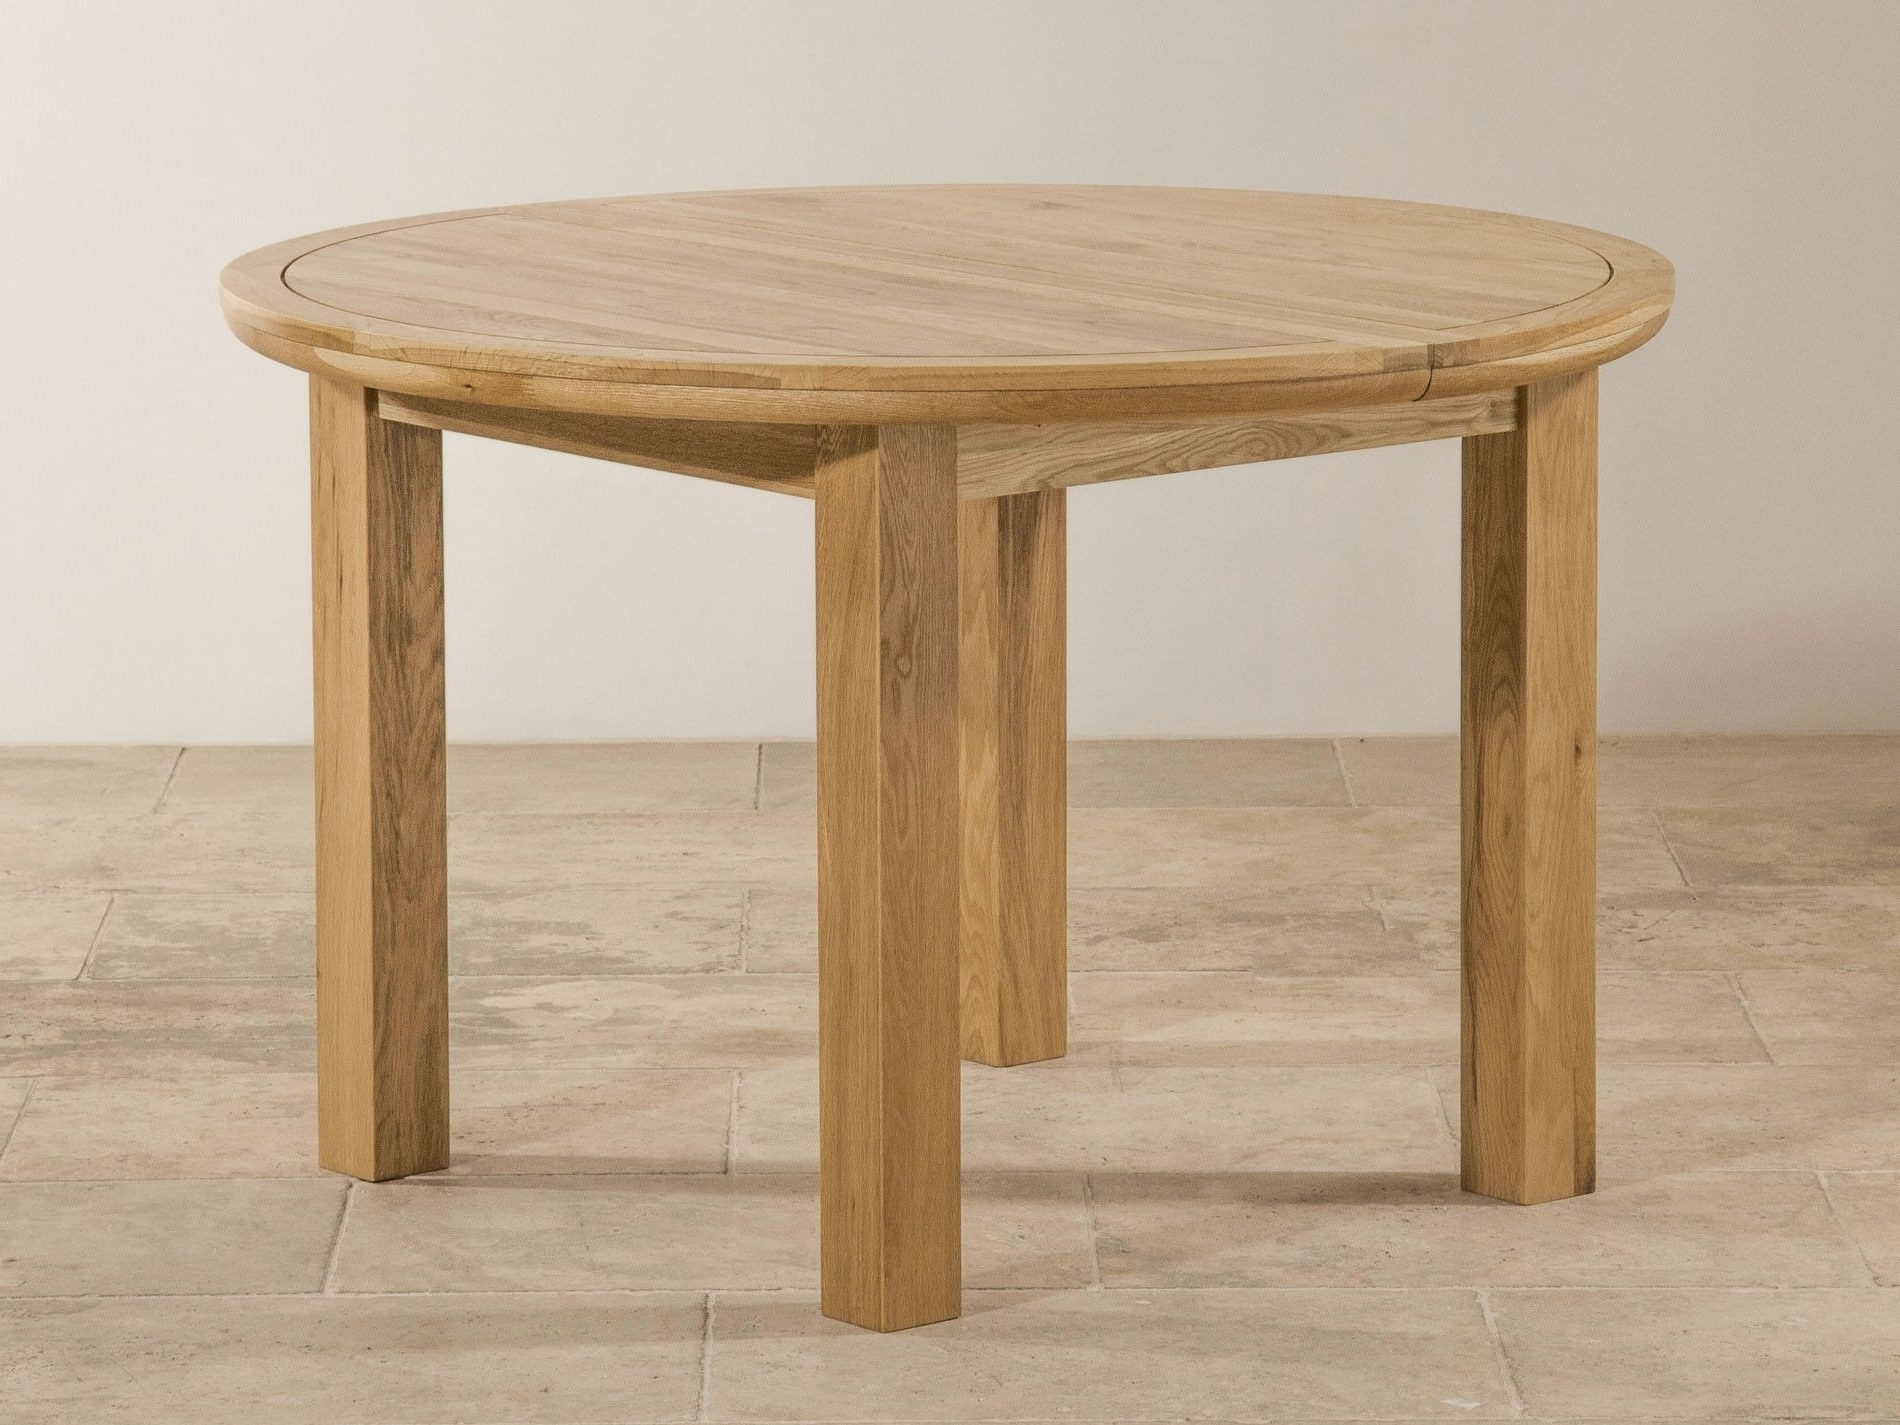 Round Oak Extendable Dining Tables And Chairs Regarding 2018 The 24 Elegant Solid Oak Round Dining Table 6 Chairs (View 21 of 25)